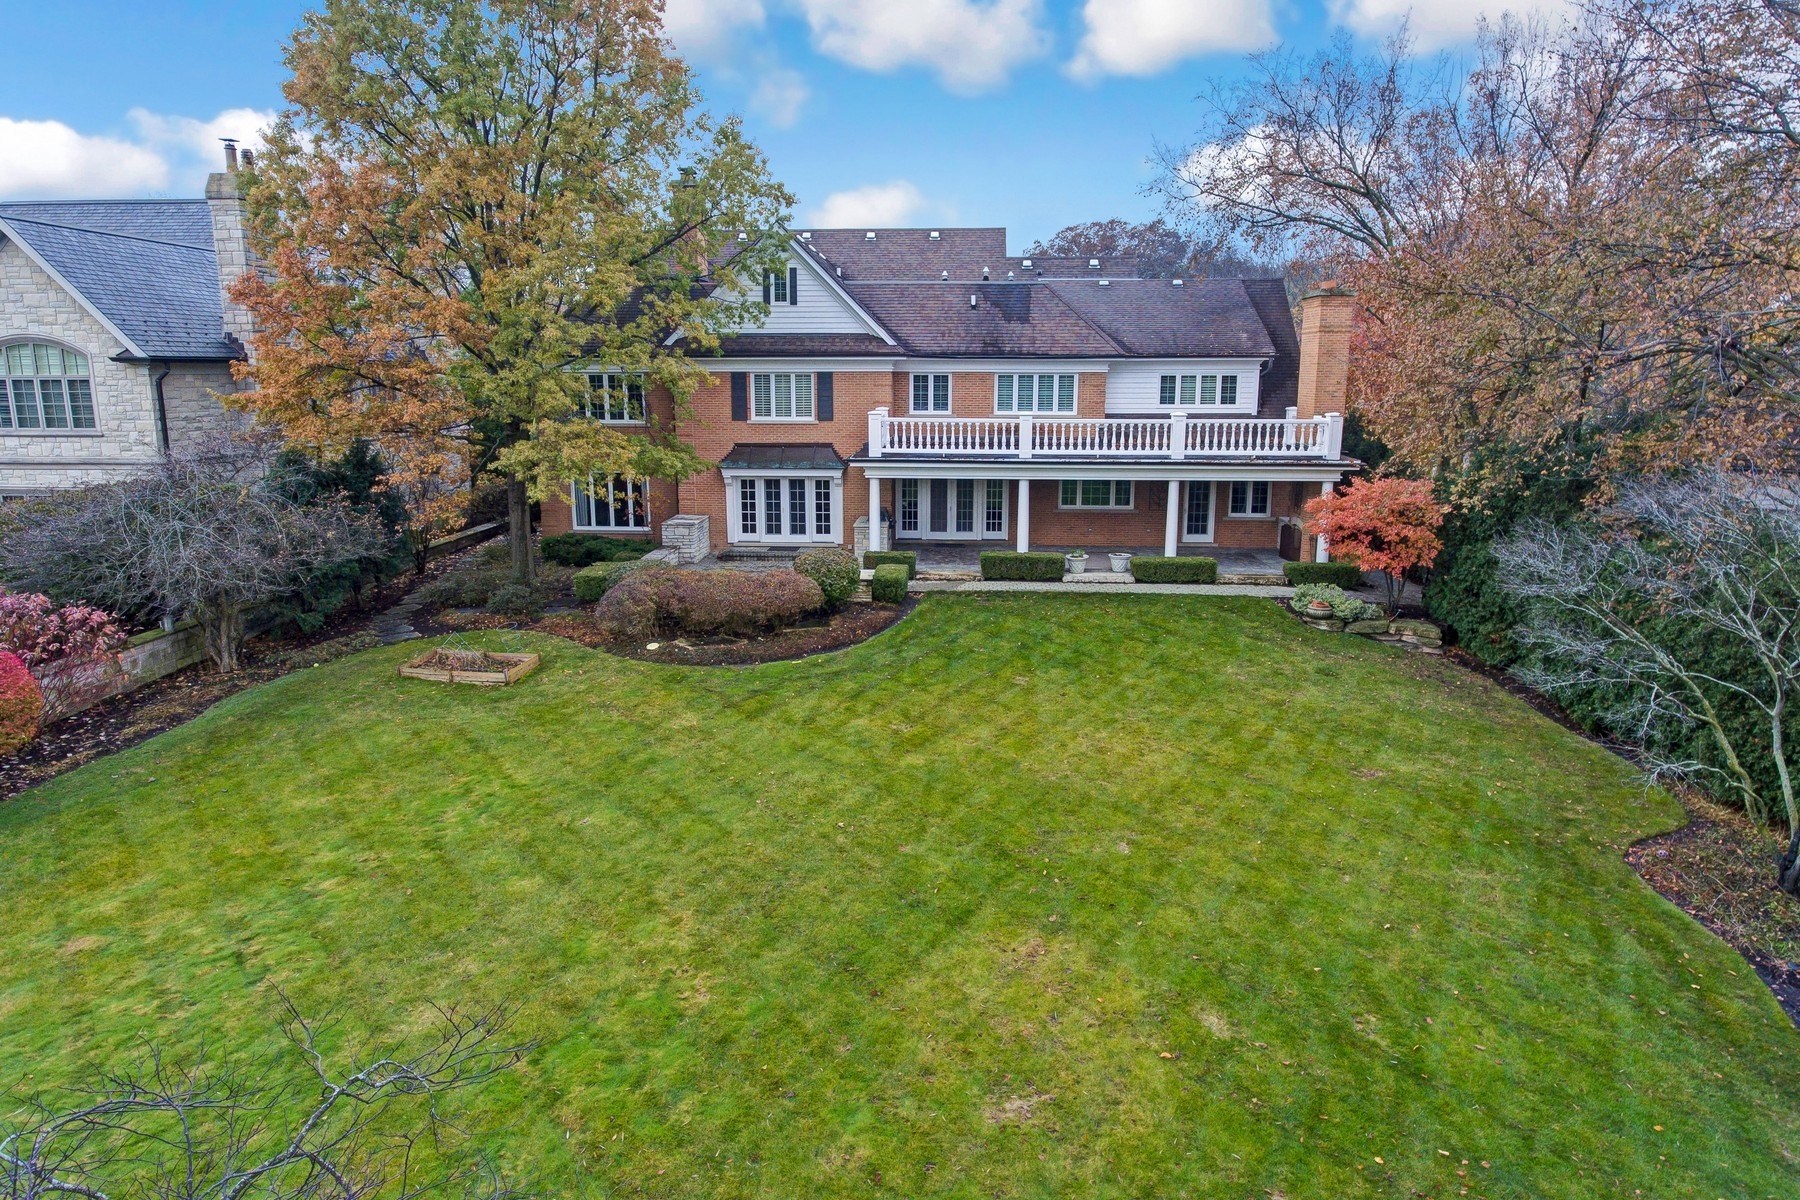 Additional photo for property listing at 835 S. Park 835 S. Park Hinsdale, Illinois 60521 United States